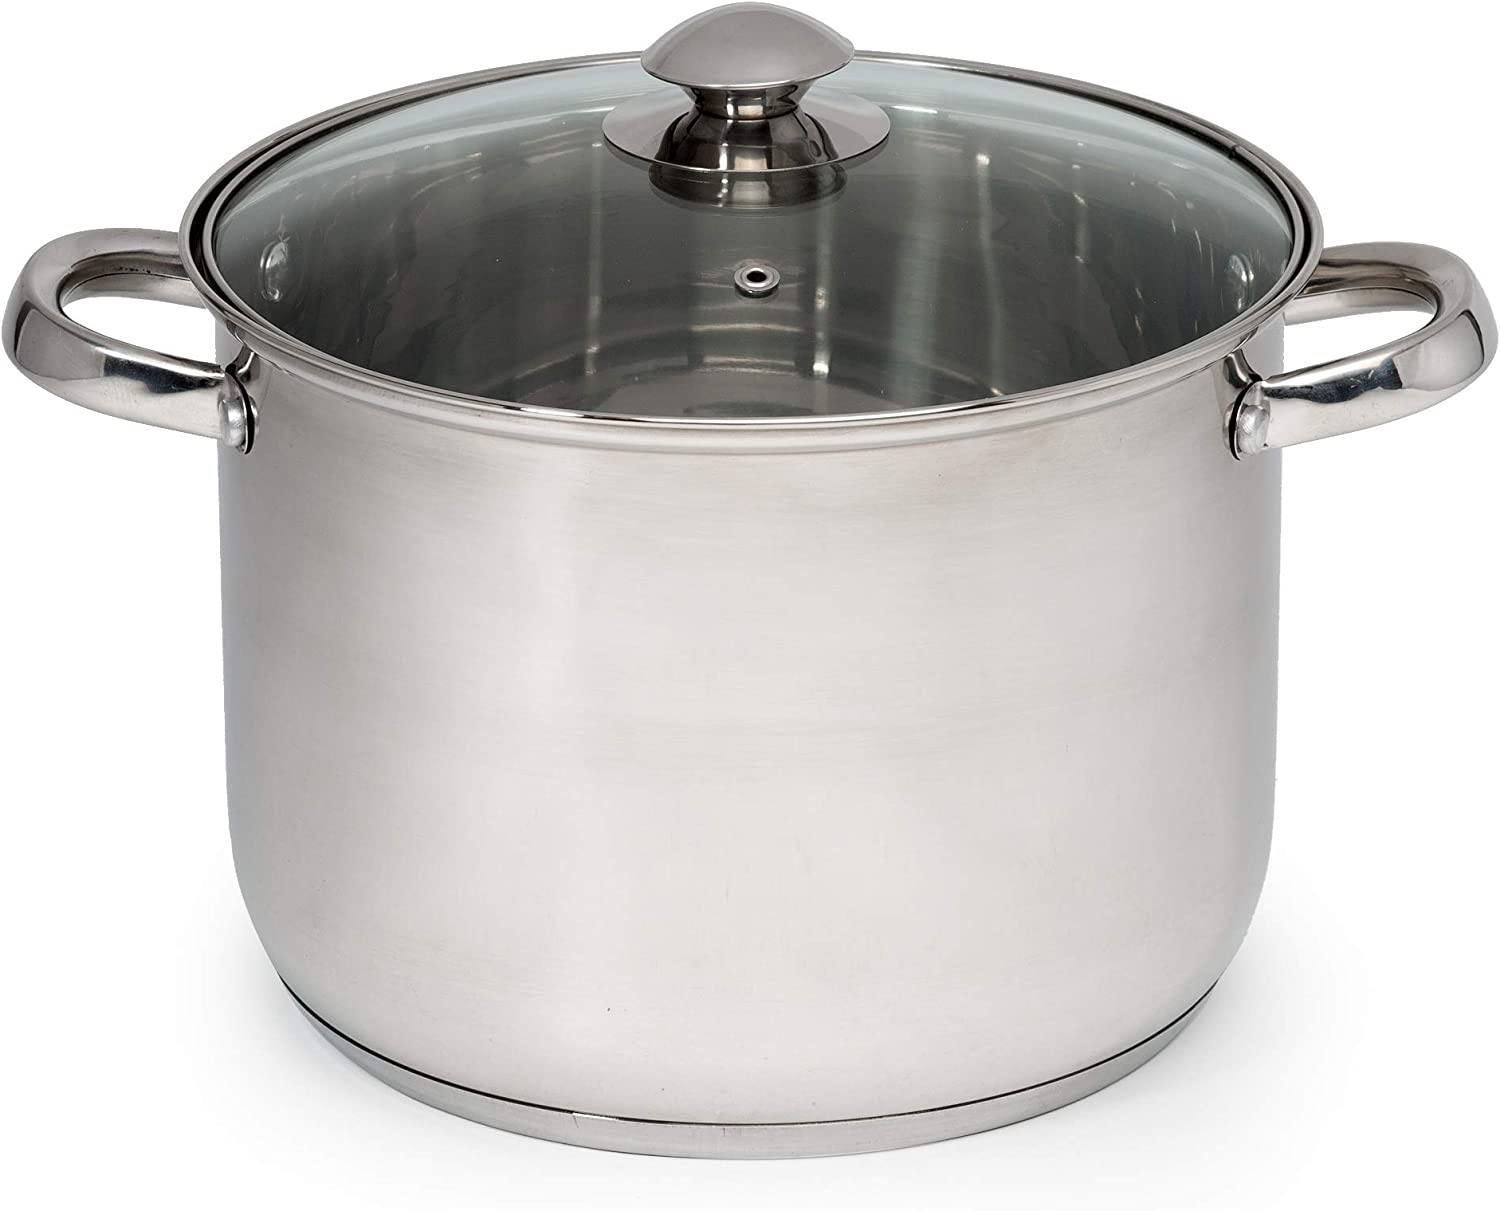 Ecolution Pure Intentions Stainless Steel Stock Pot/Stockpot with Tempered Glass Steam Vented Lid, 8 Quart